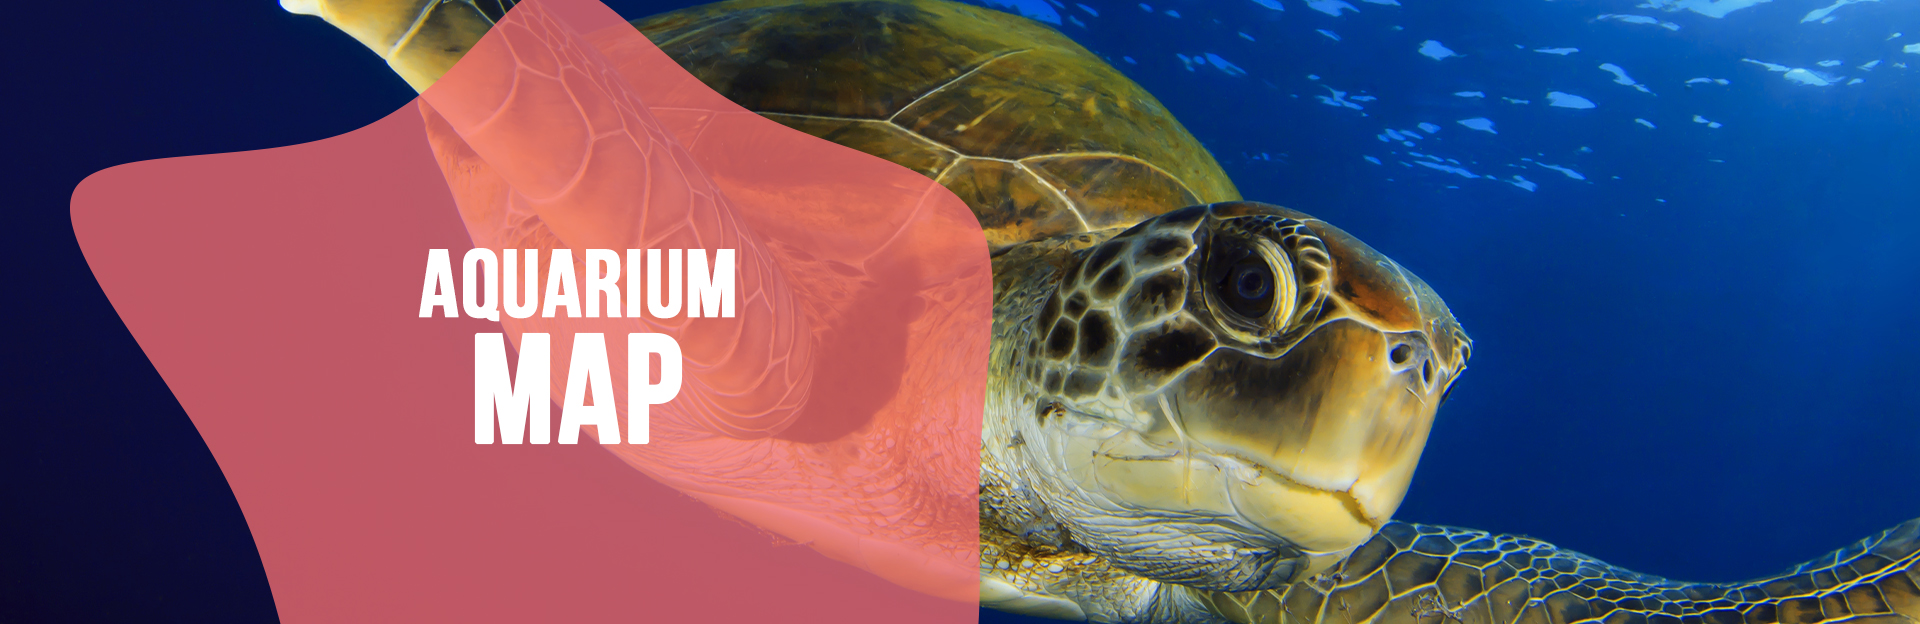 Header image for Aquarium Map